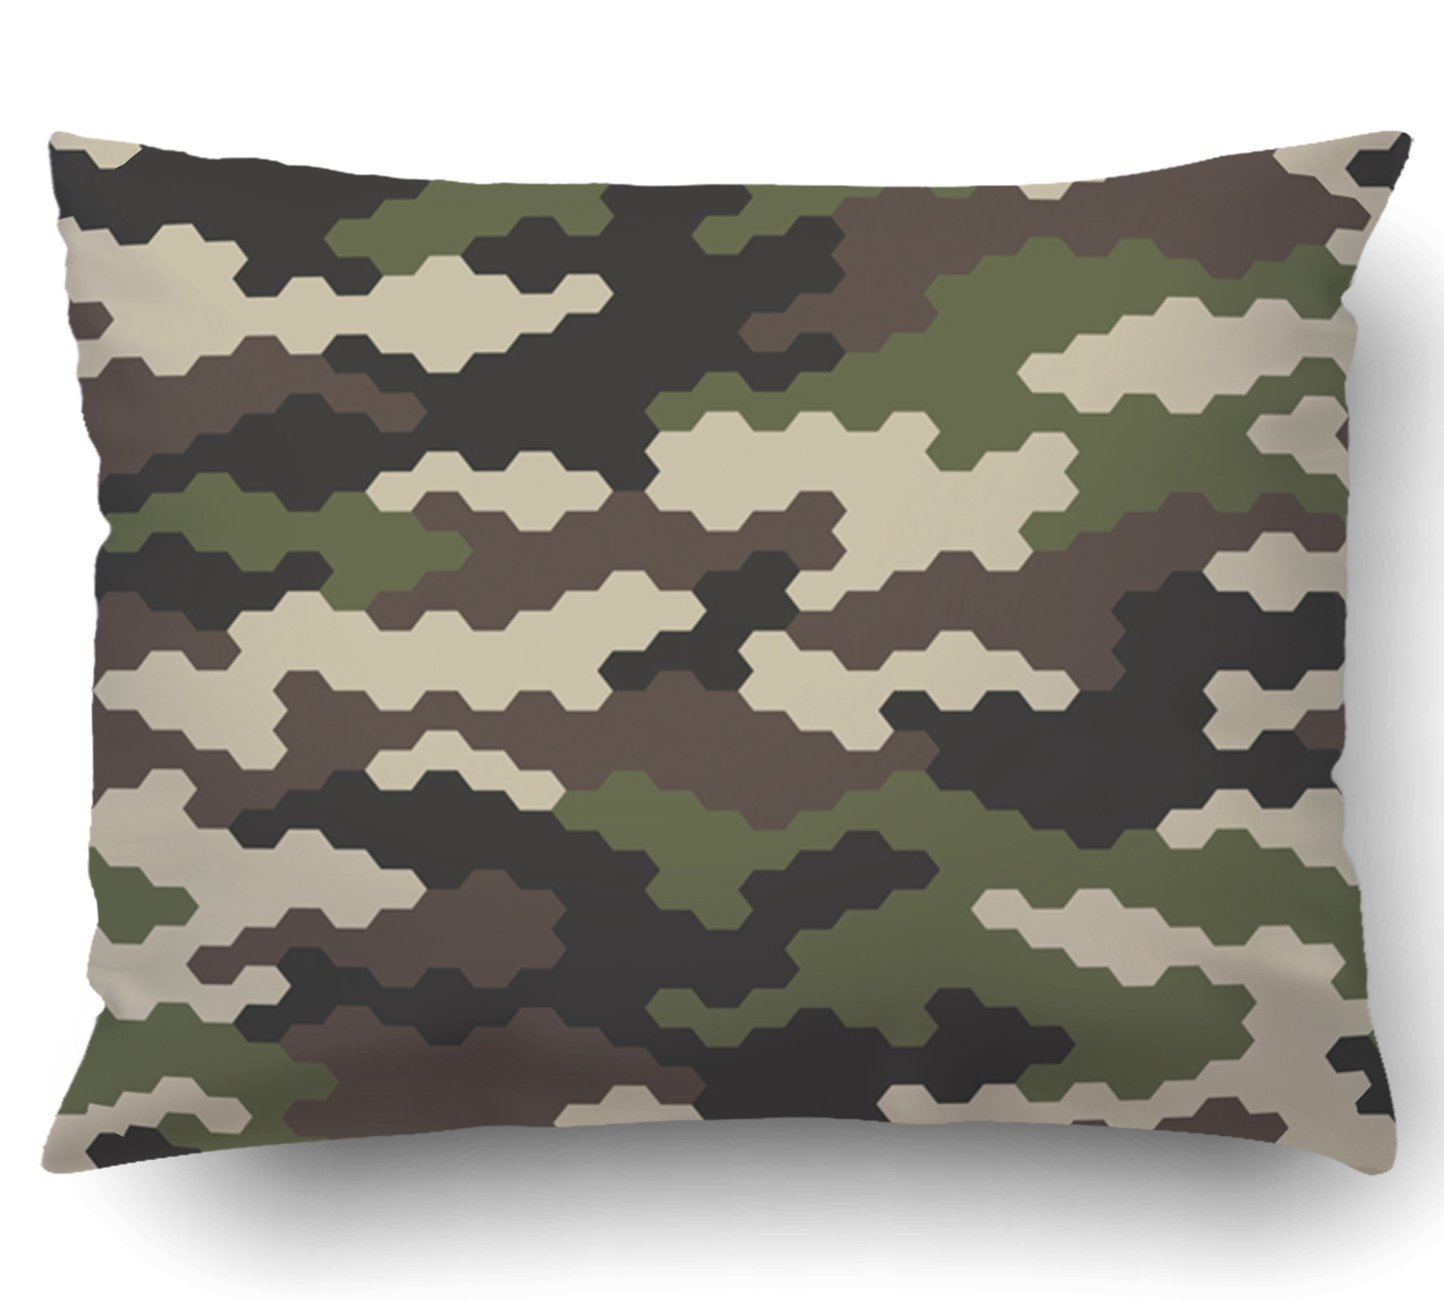 Emvency Pillow Covers Decorative Submarine Against The Evening Sky Navy Bulk With Zippered 16x16 Square Pillow Case For Home Bed Couch Sofa Car One Sided